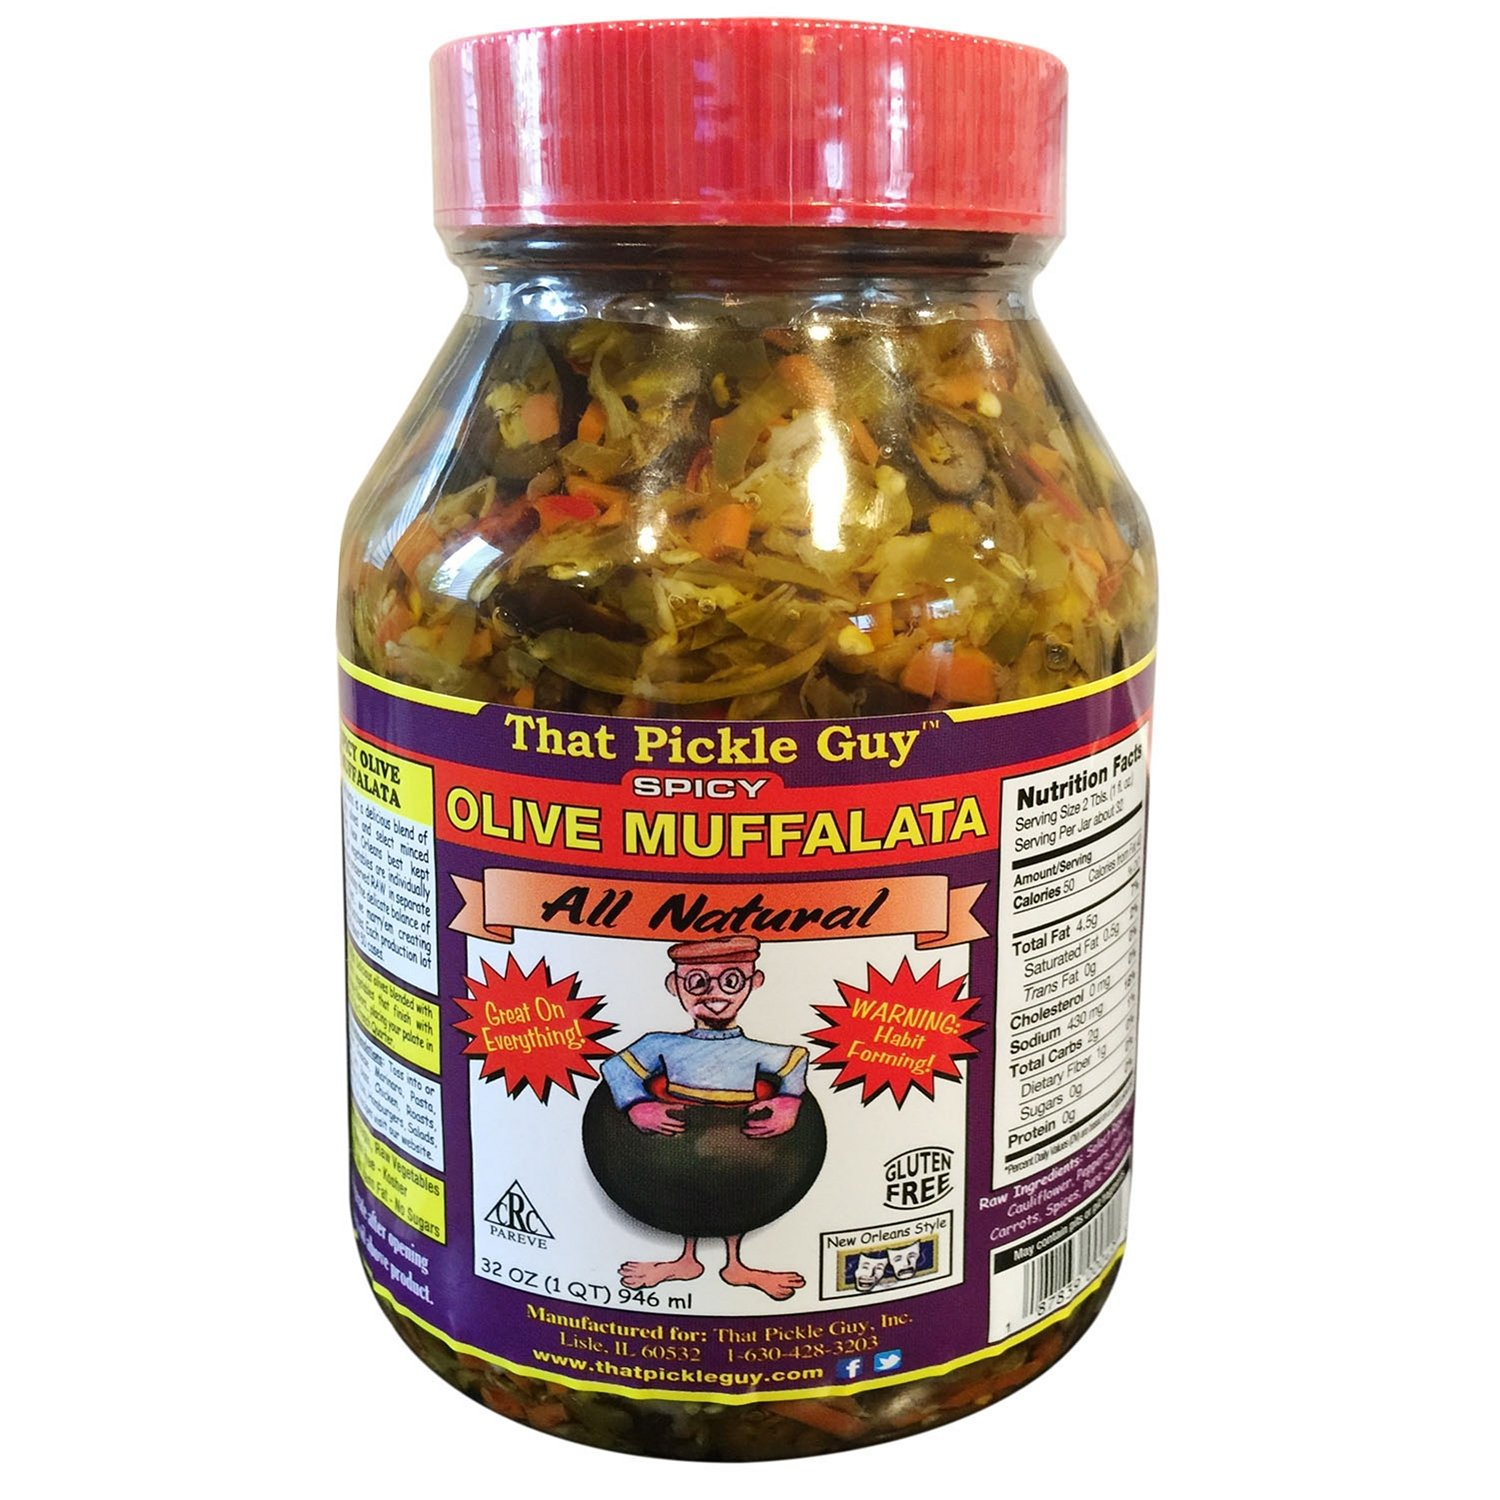 That Pickle Guy Spicy Olive Muffalata Mix, 32 Oz